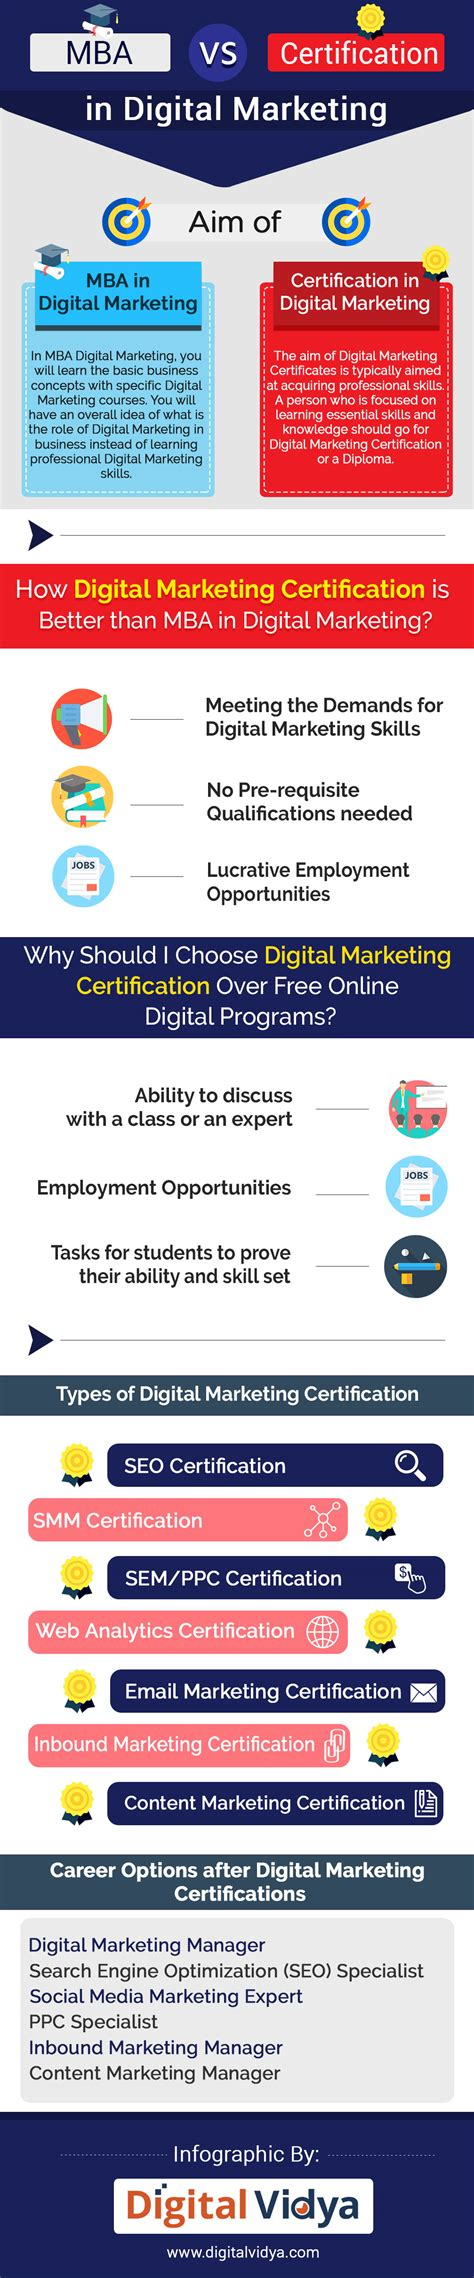 marketing certifications mba in digital marketing vs digital marketing certification